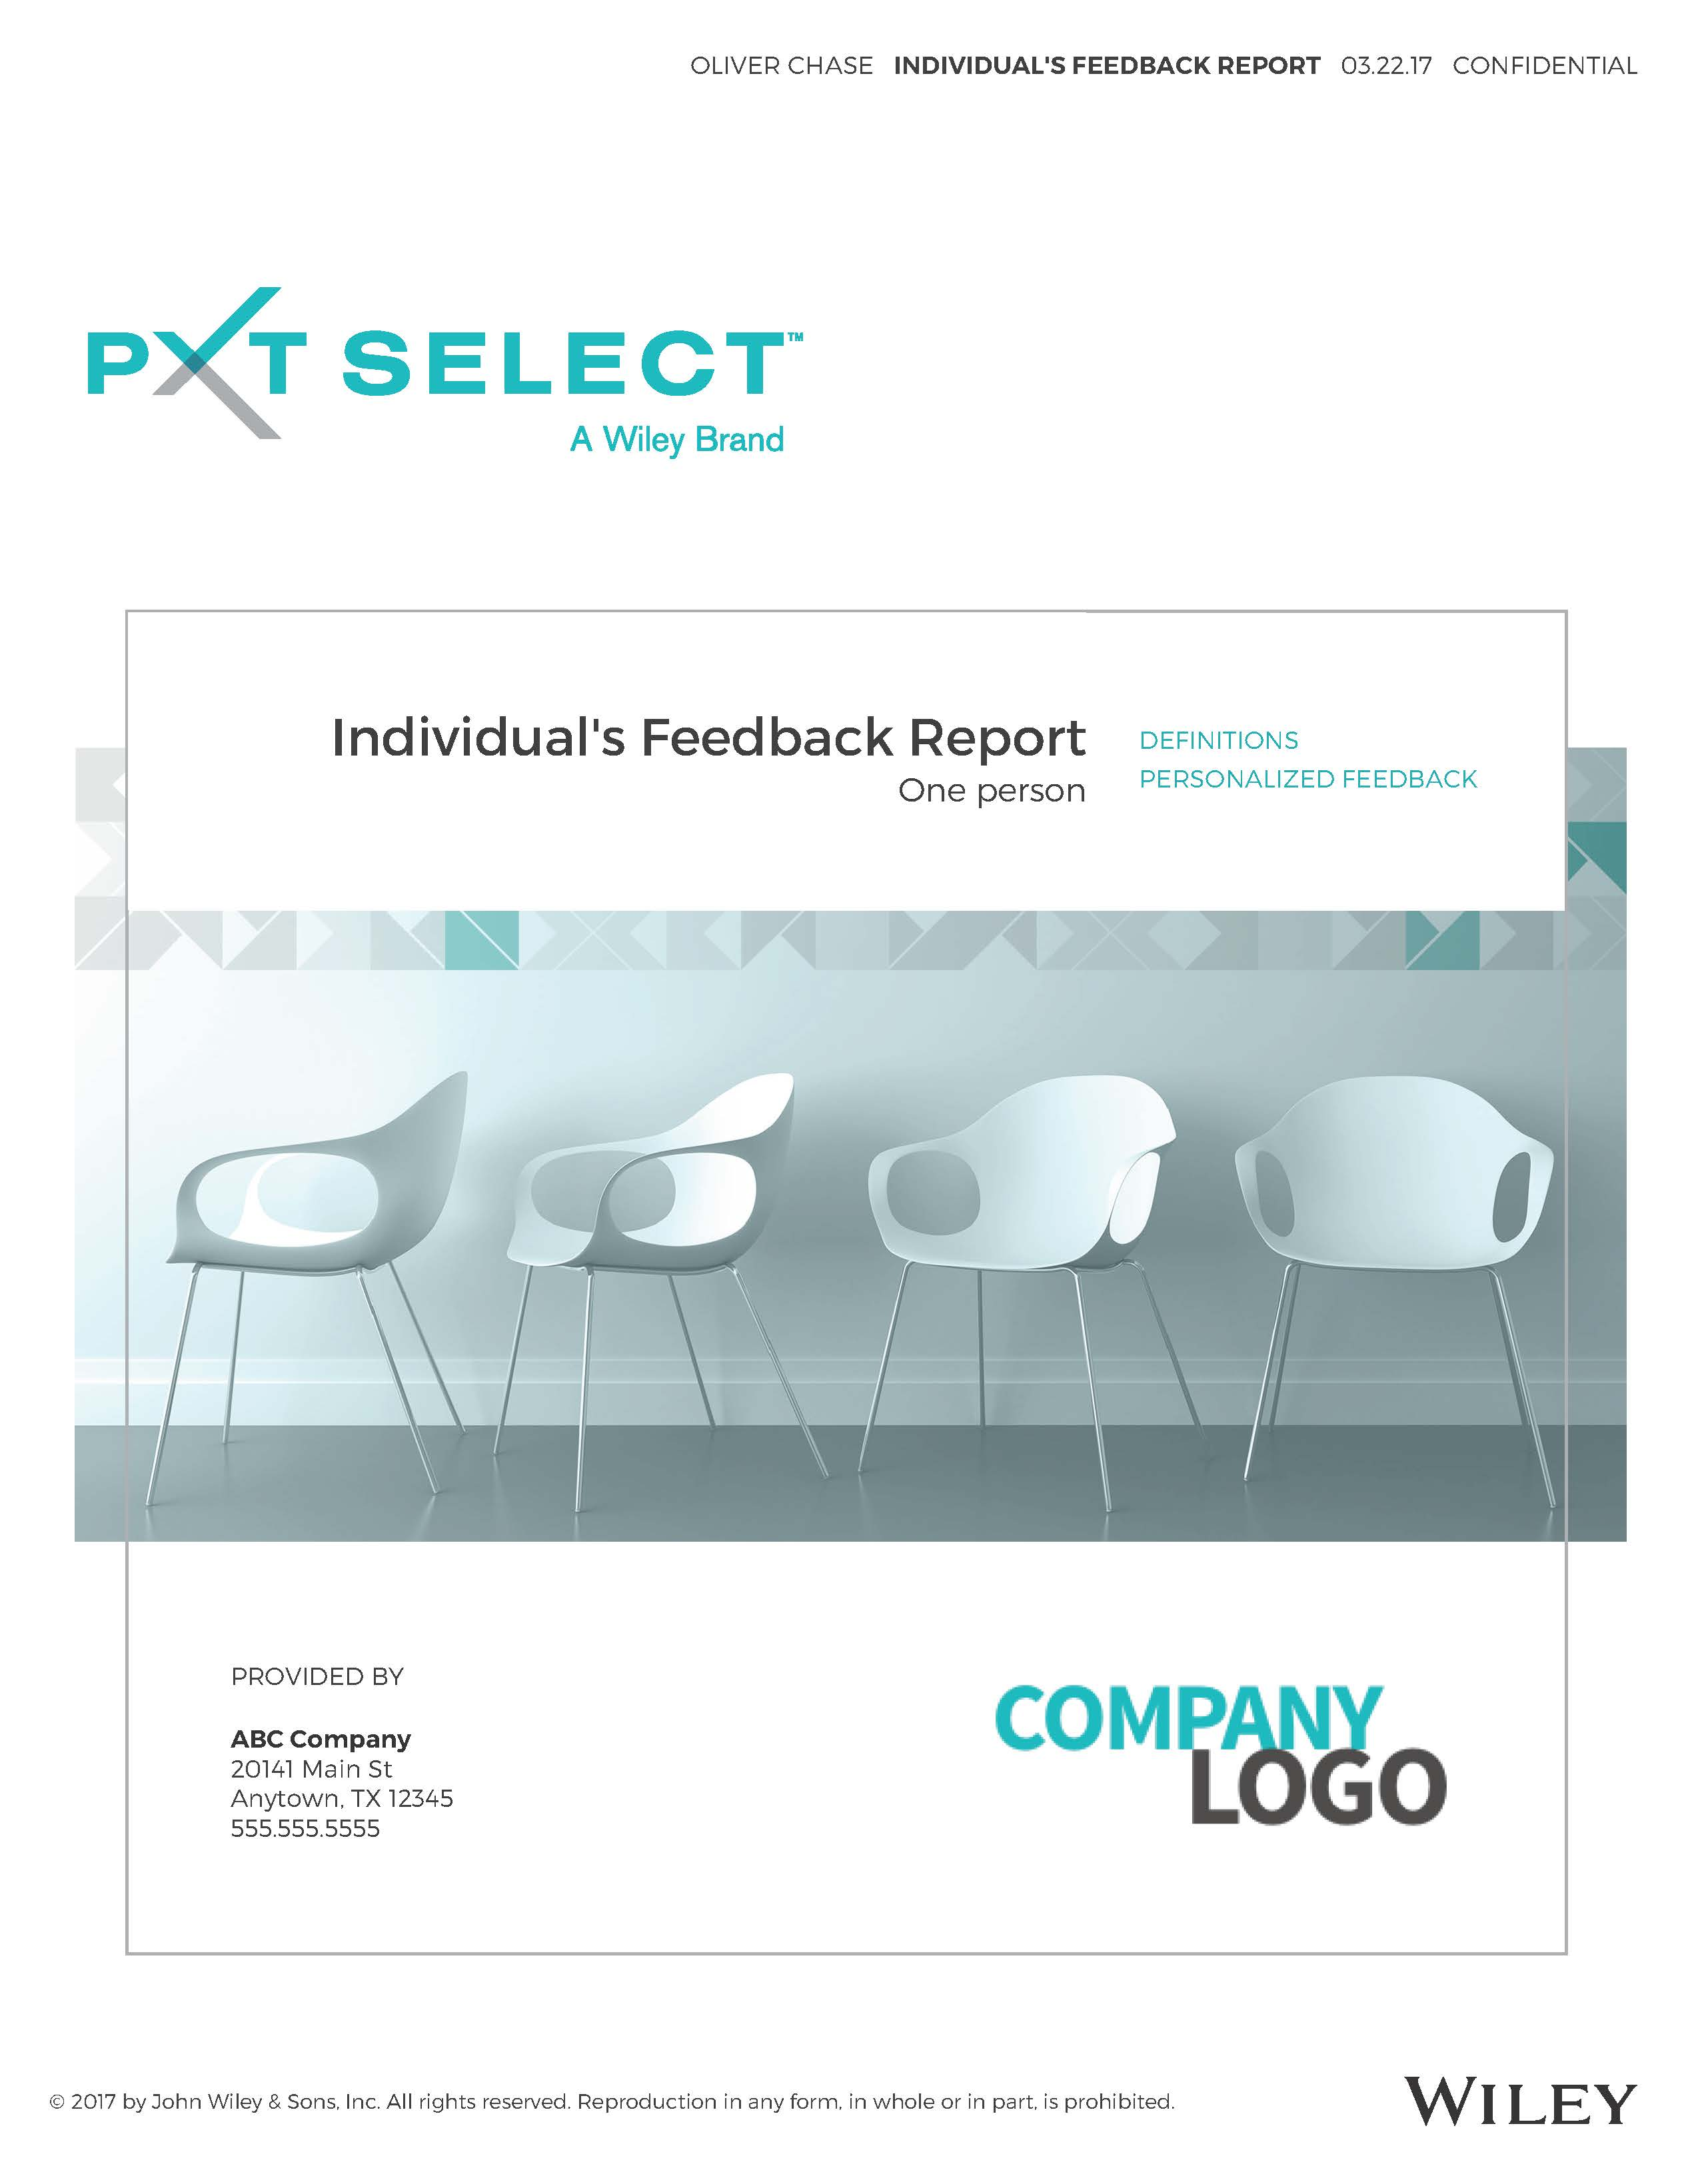 Individual's Feedback Sample Report Cover